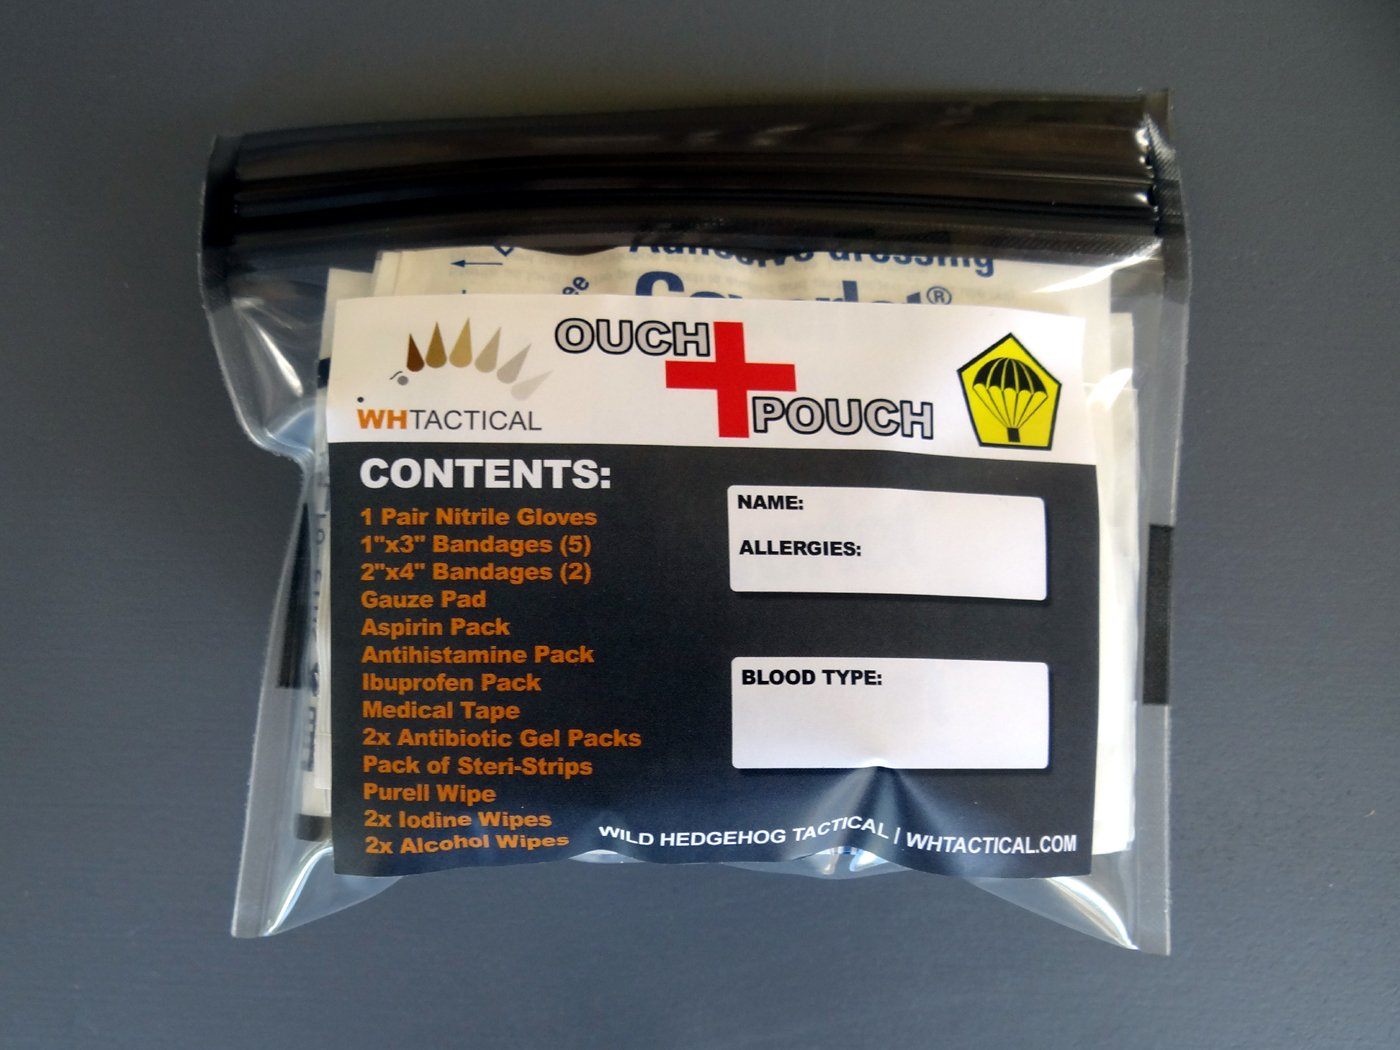 Ouch Pouch Waterproof First Aid Kit